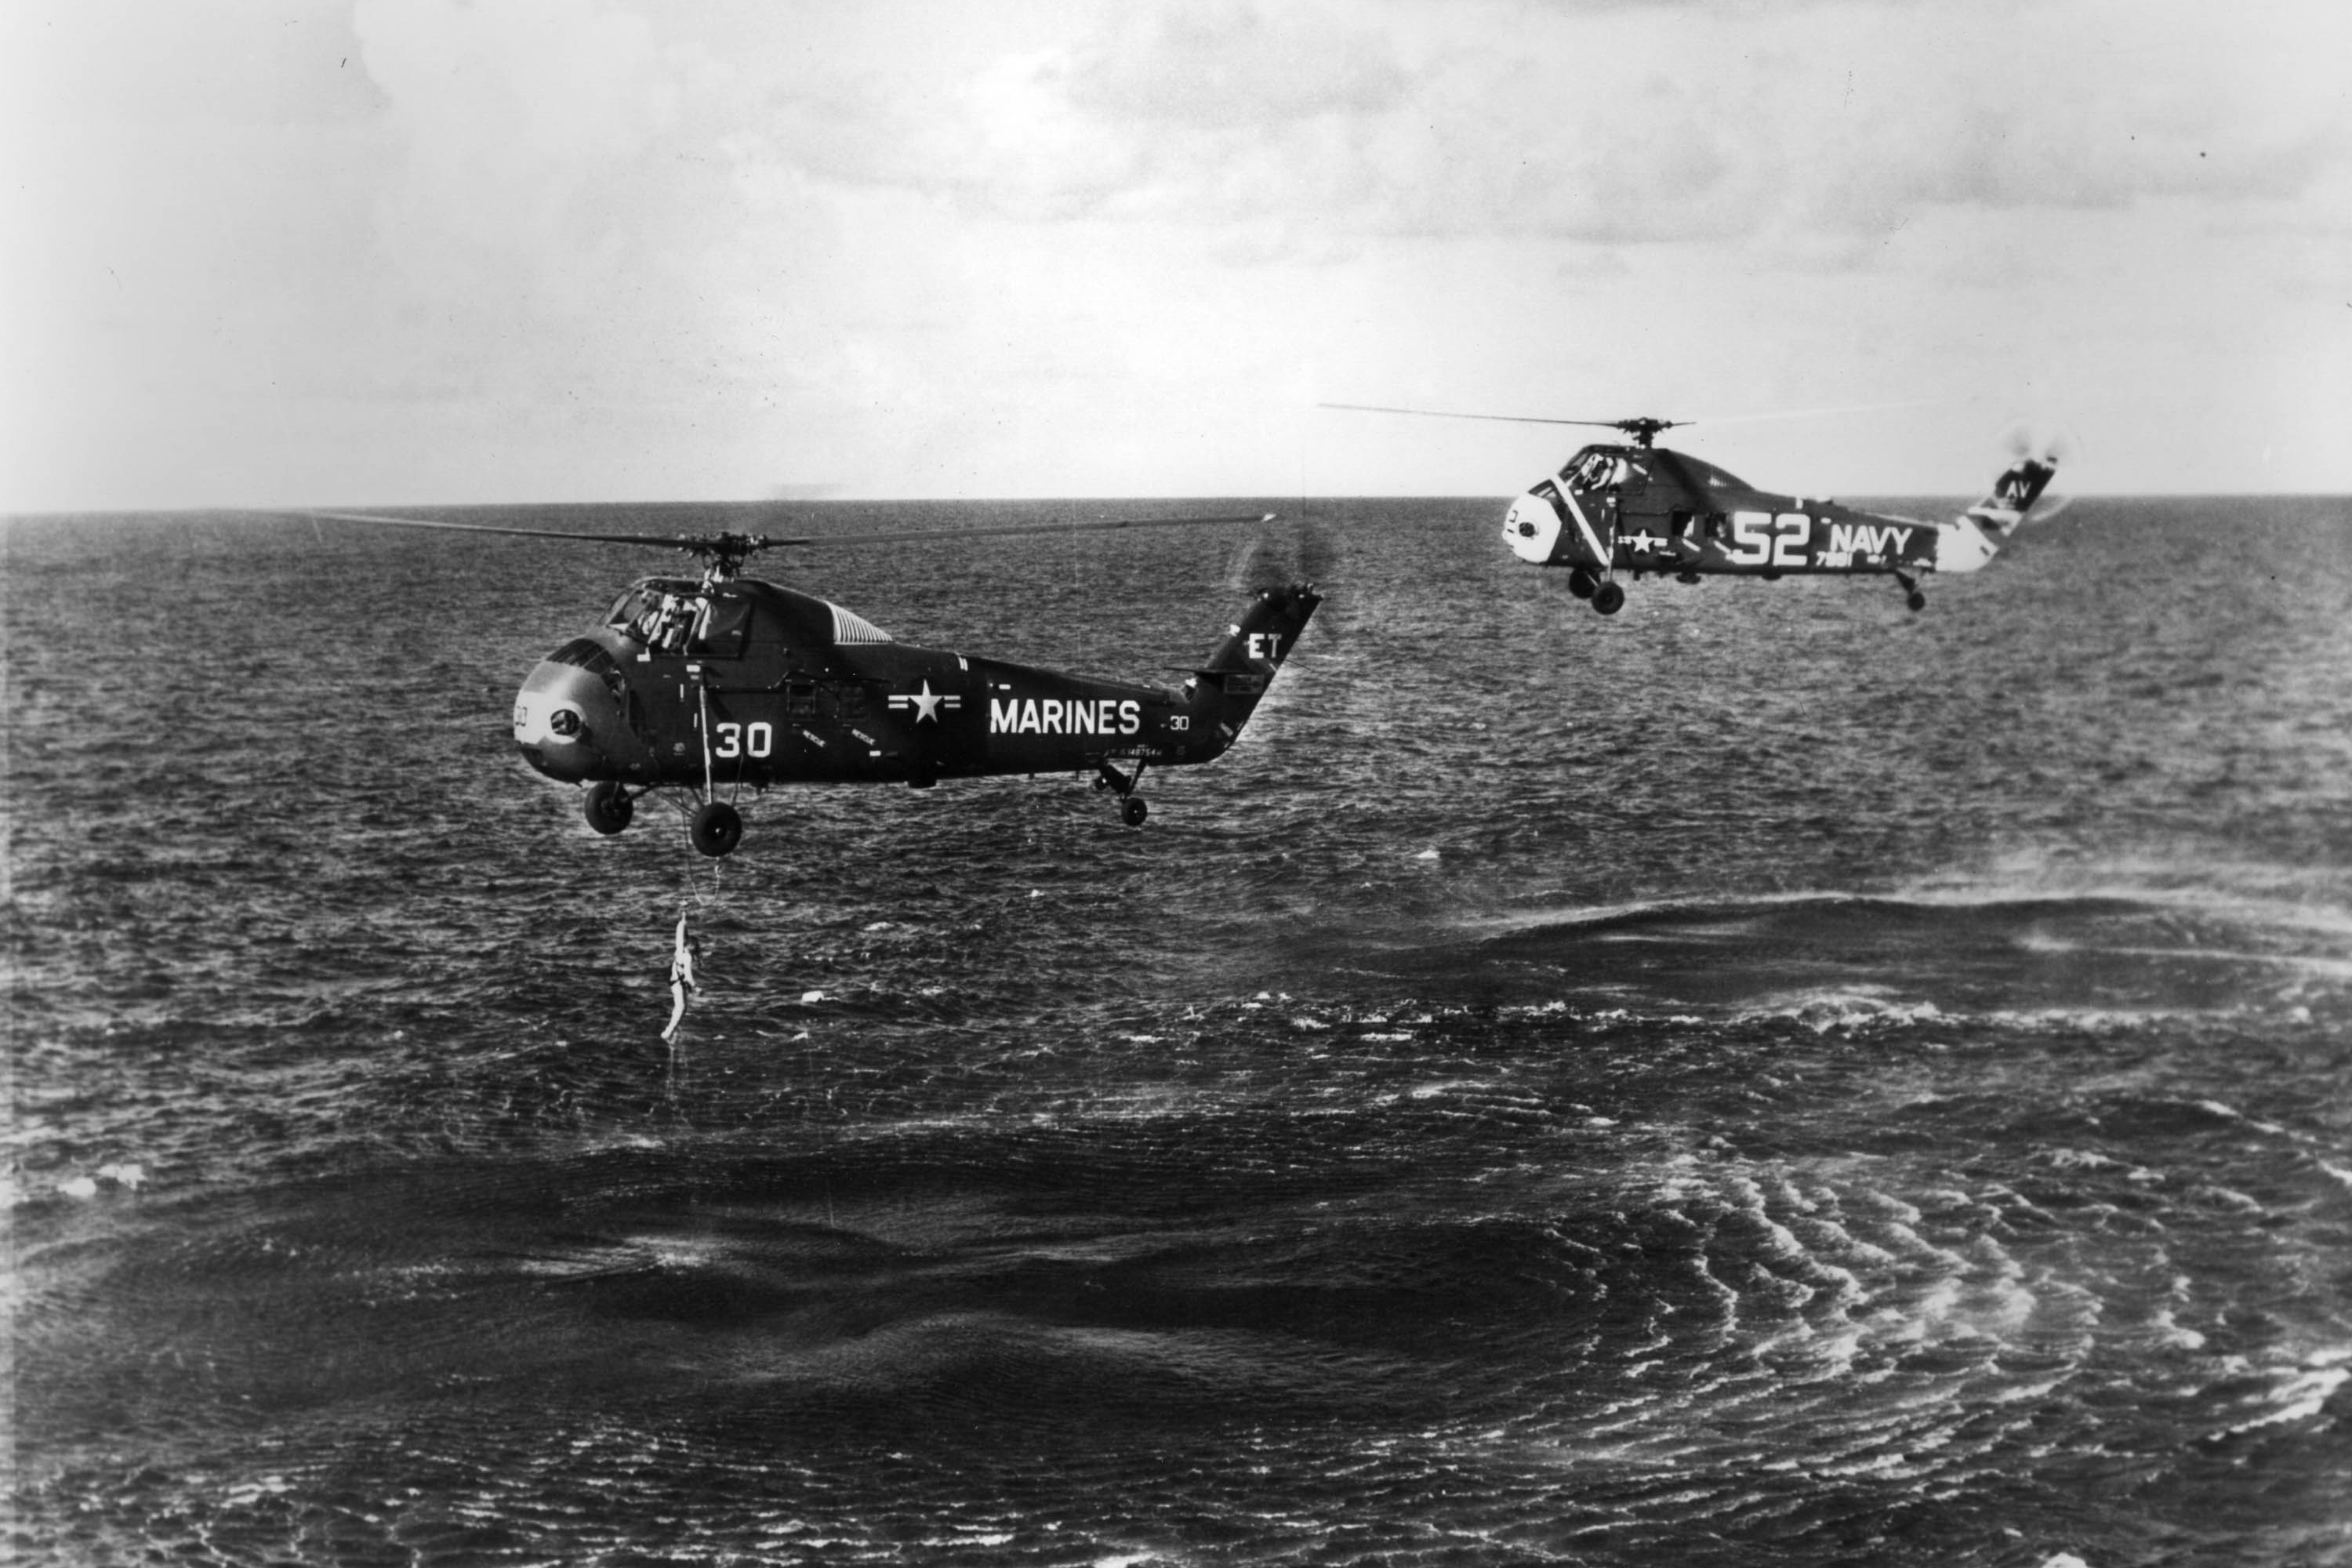 July 21, 1961, Worldwide Mercury Astronaut Virgil 'Gus' Grissom Is Pulled From The Ocean. His Spce Capsule 'Liberty Bell 7' Sank After He Opened The Side Hatch.